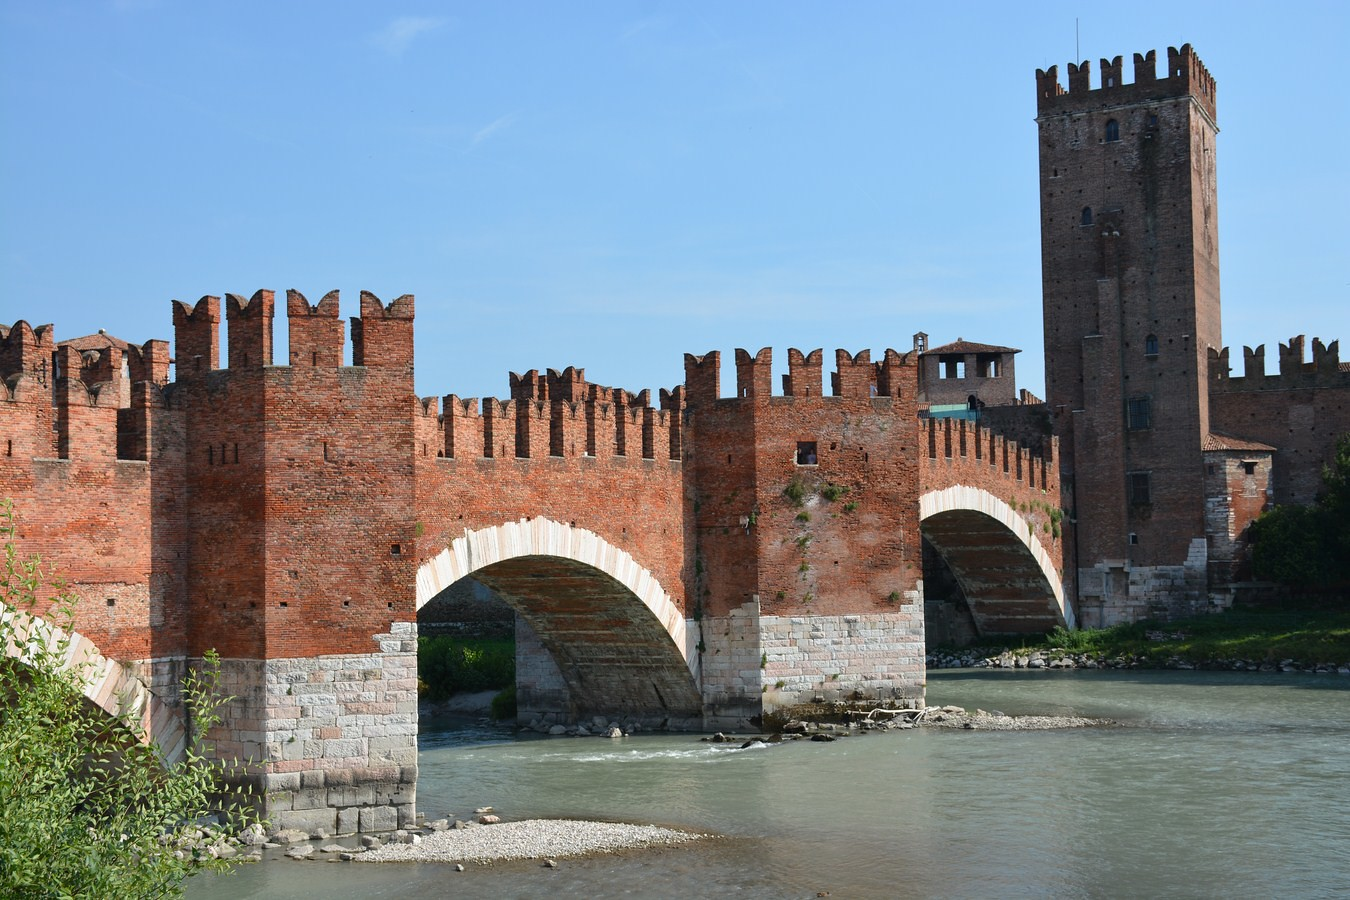 ponte di castelvecchio red stone bridge over adige river on a clear sunny day in verona italy. See it on an Italy road trip